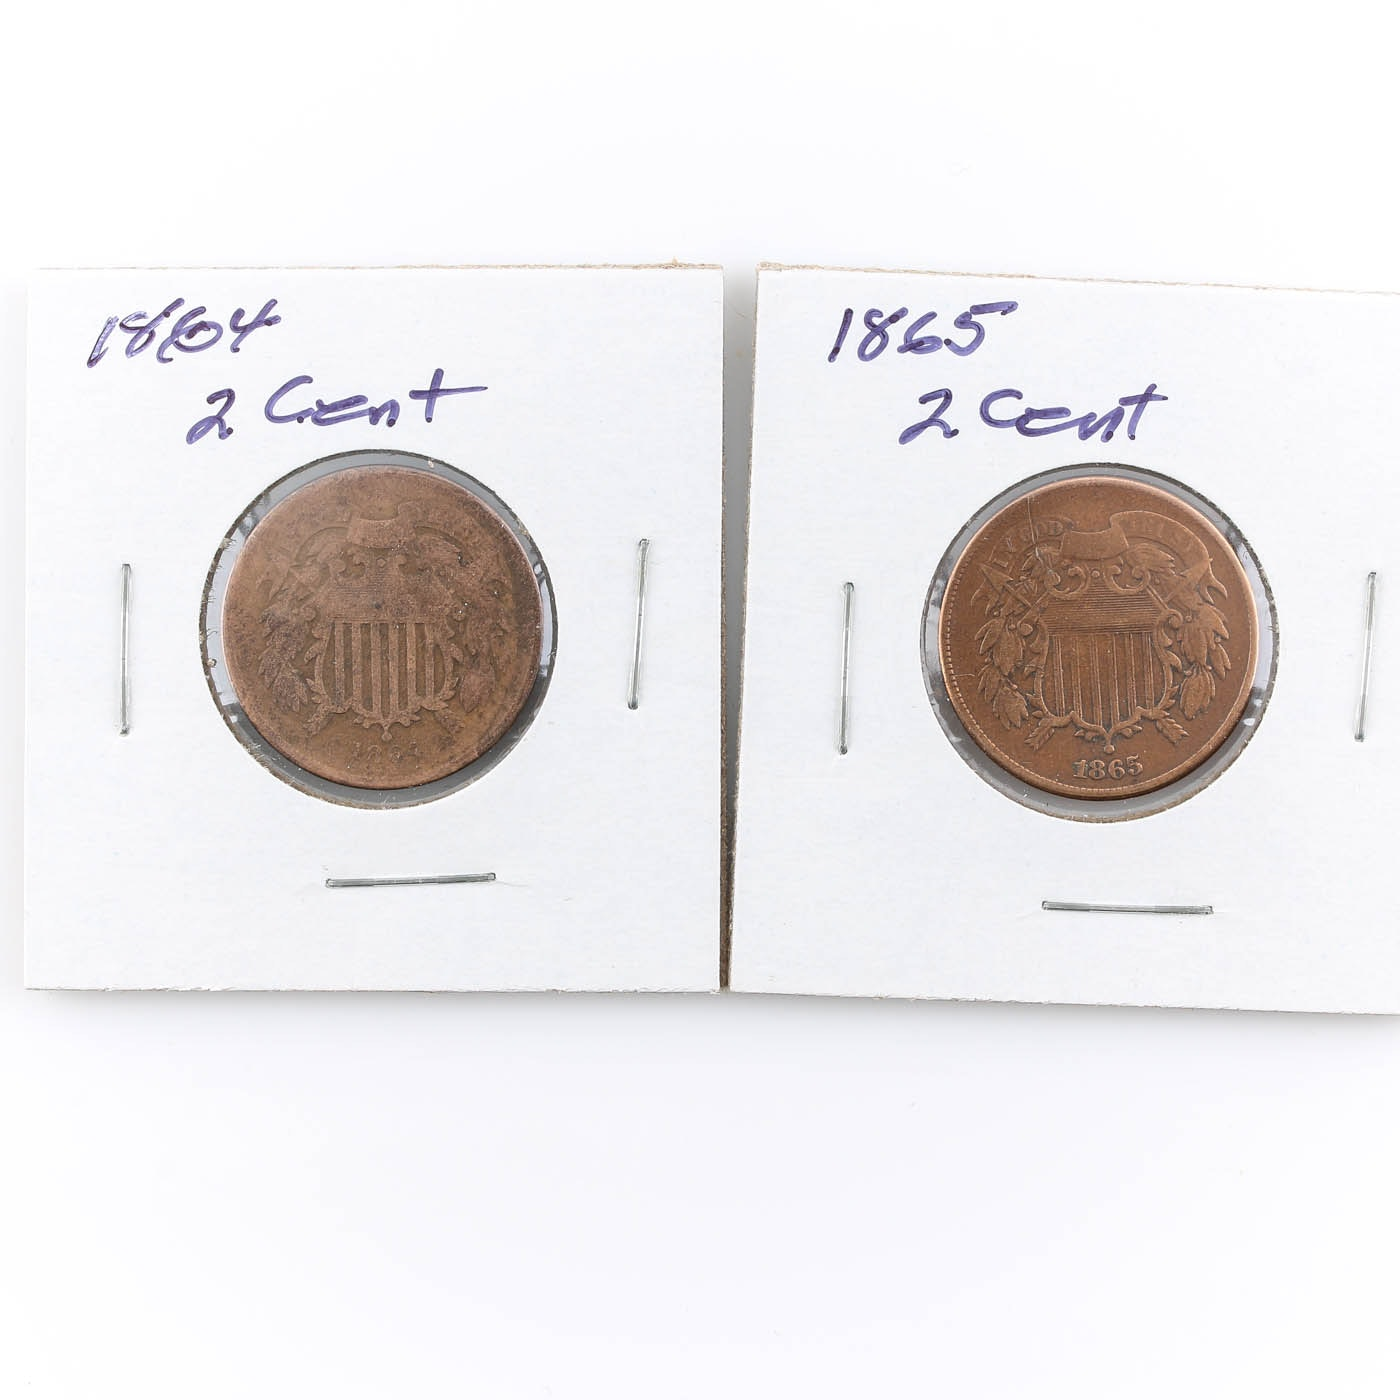 Group of 2 Two-Cent Coins Including an 1864 and 1865